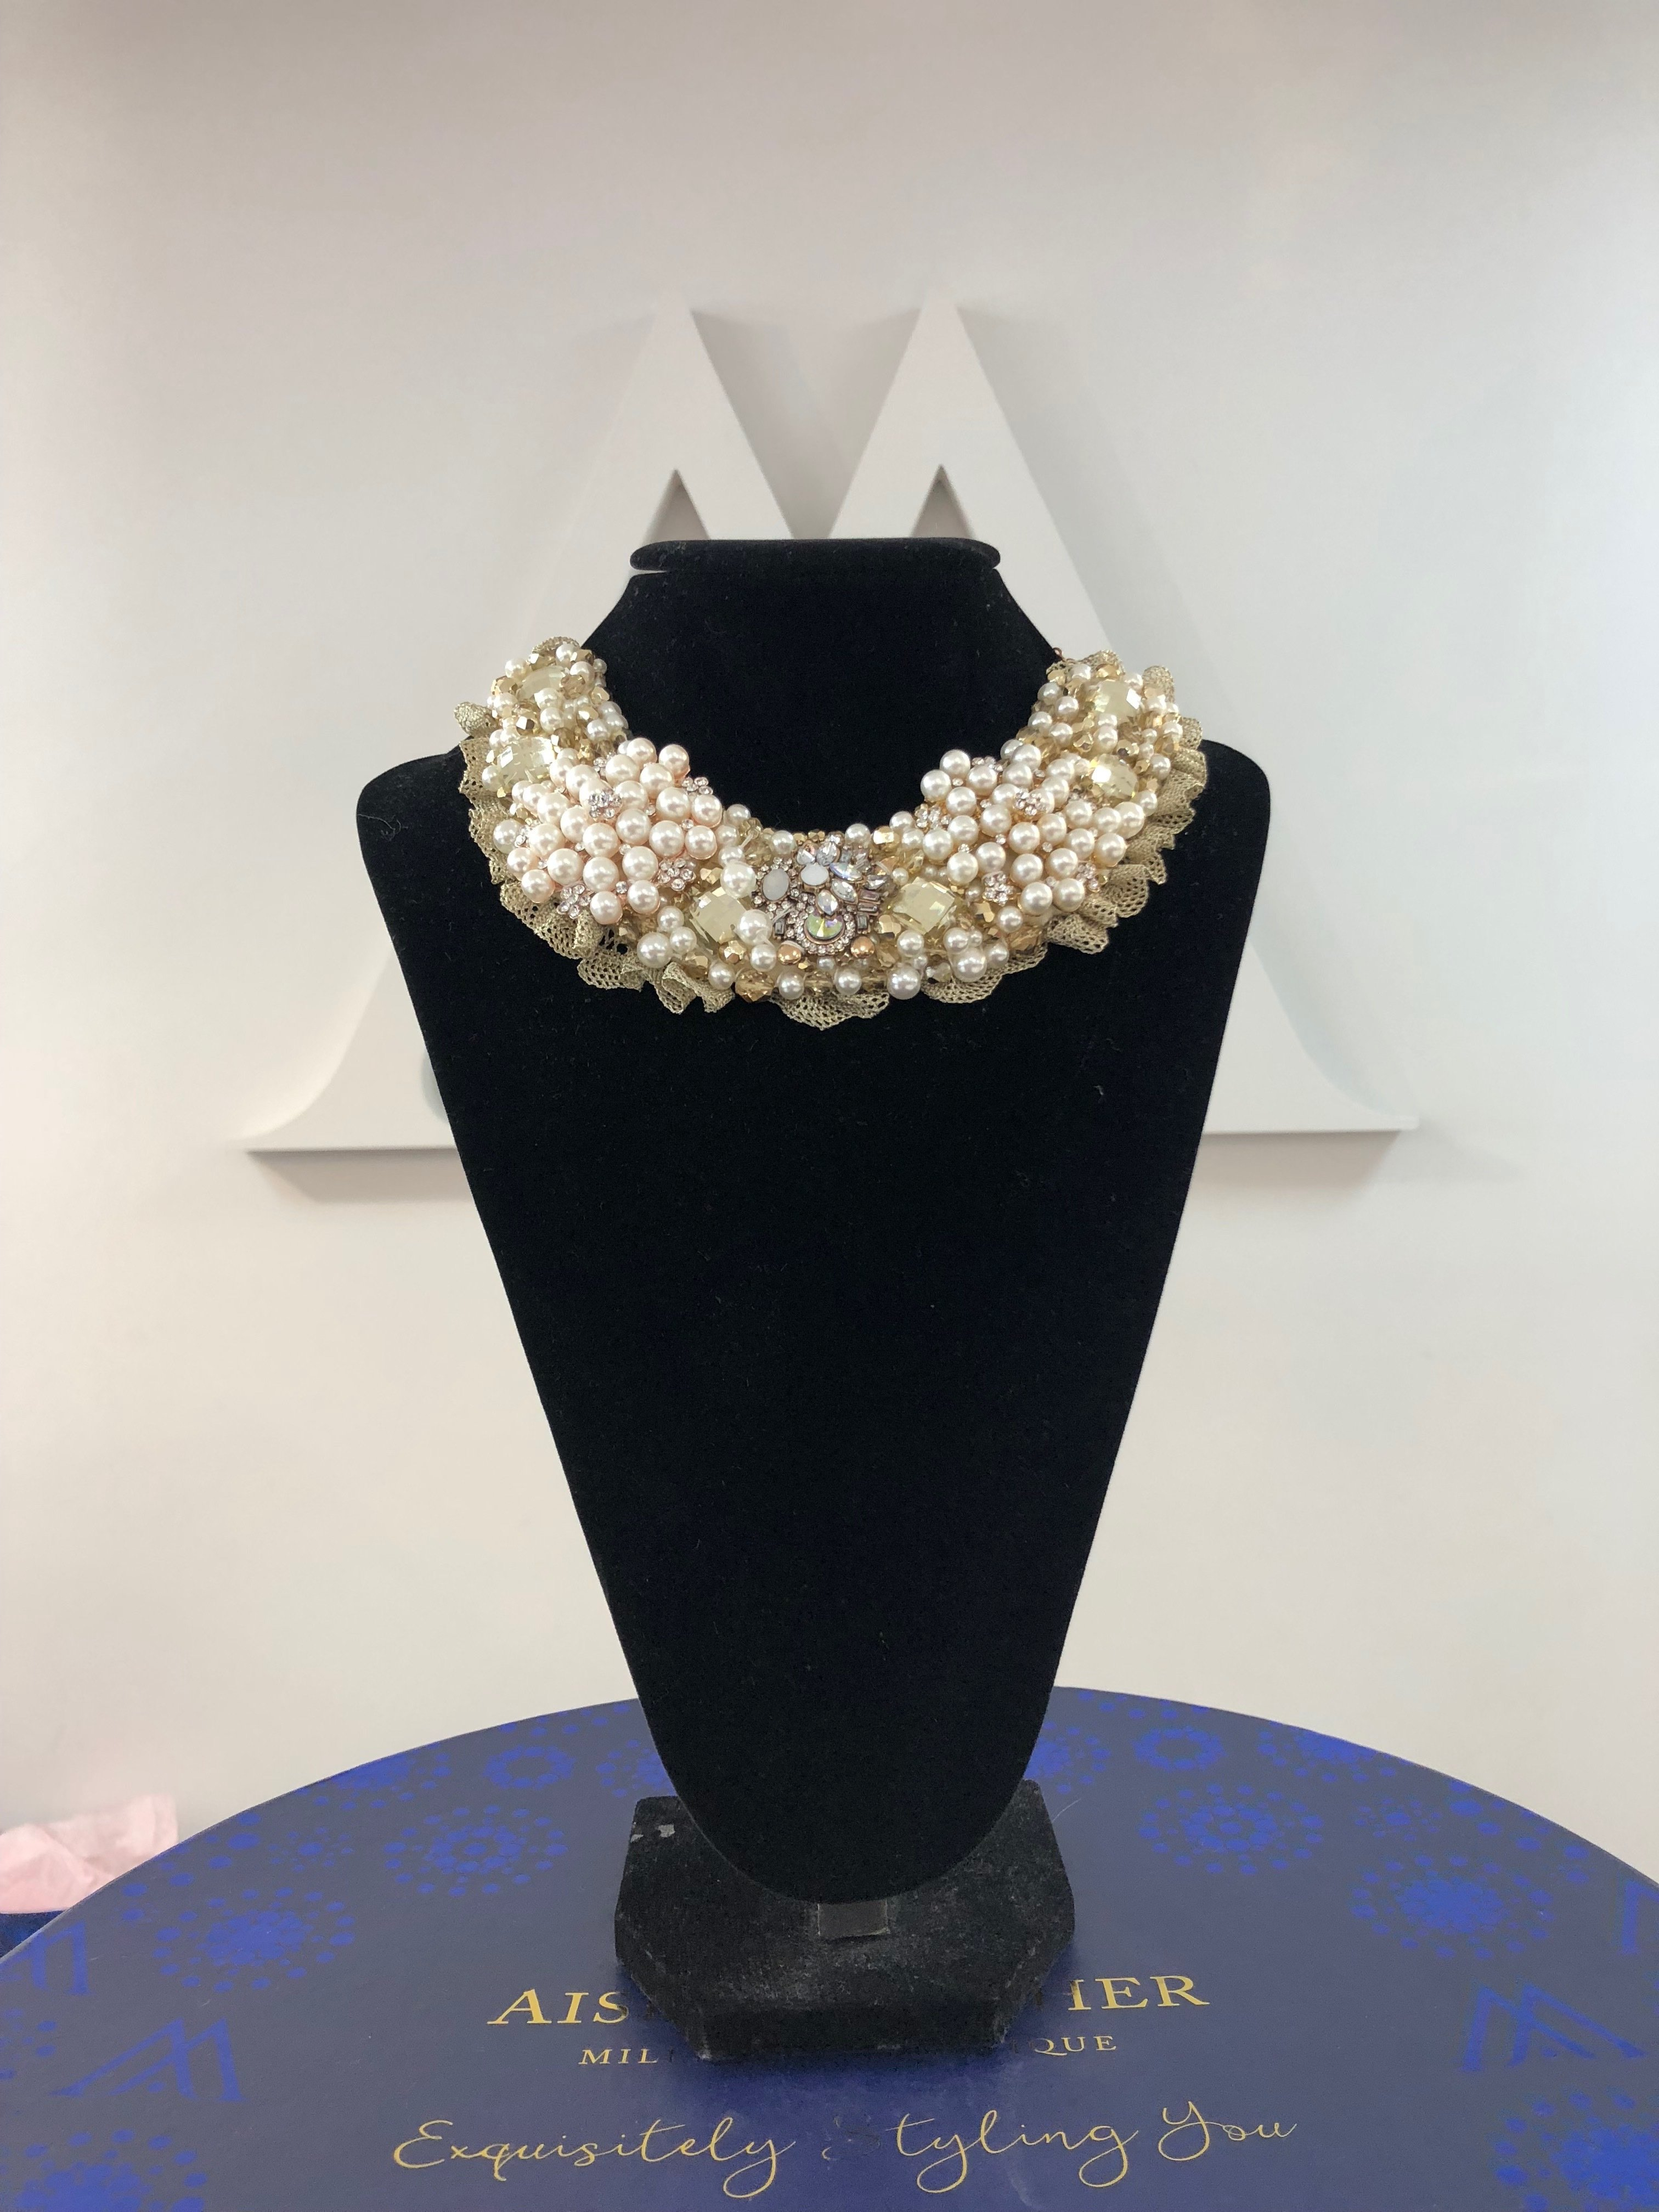 Aisling Maher Collar pearl/gold/bling